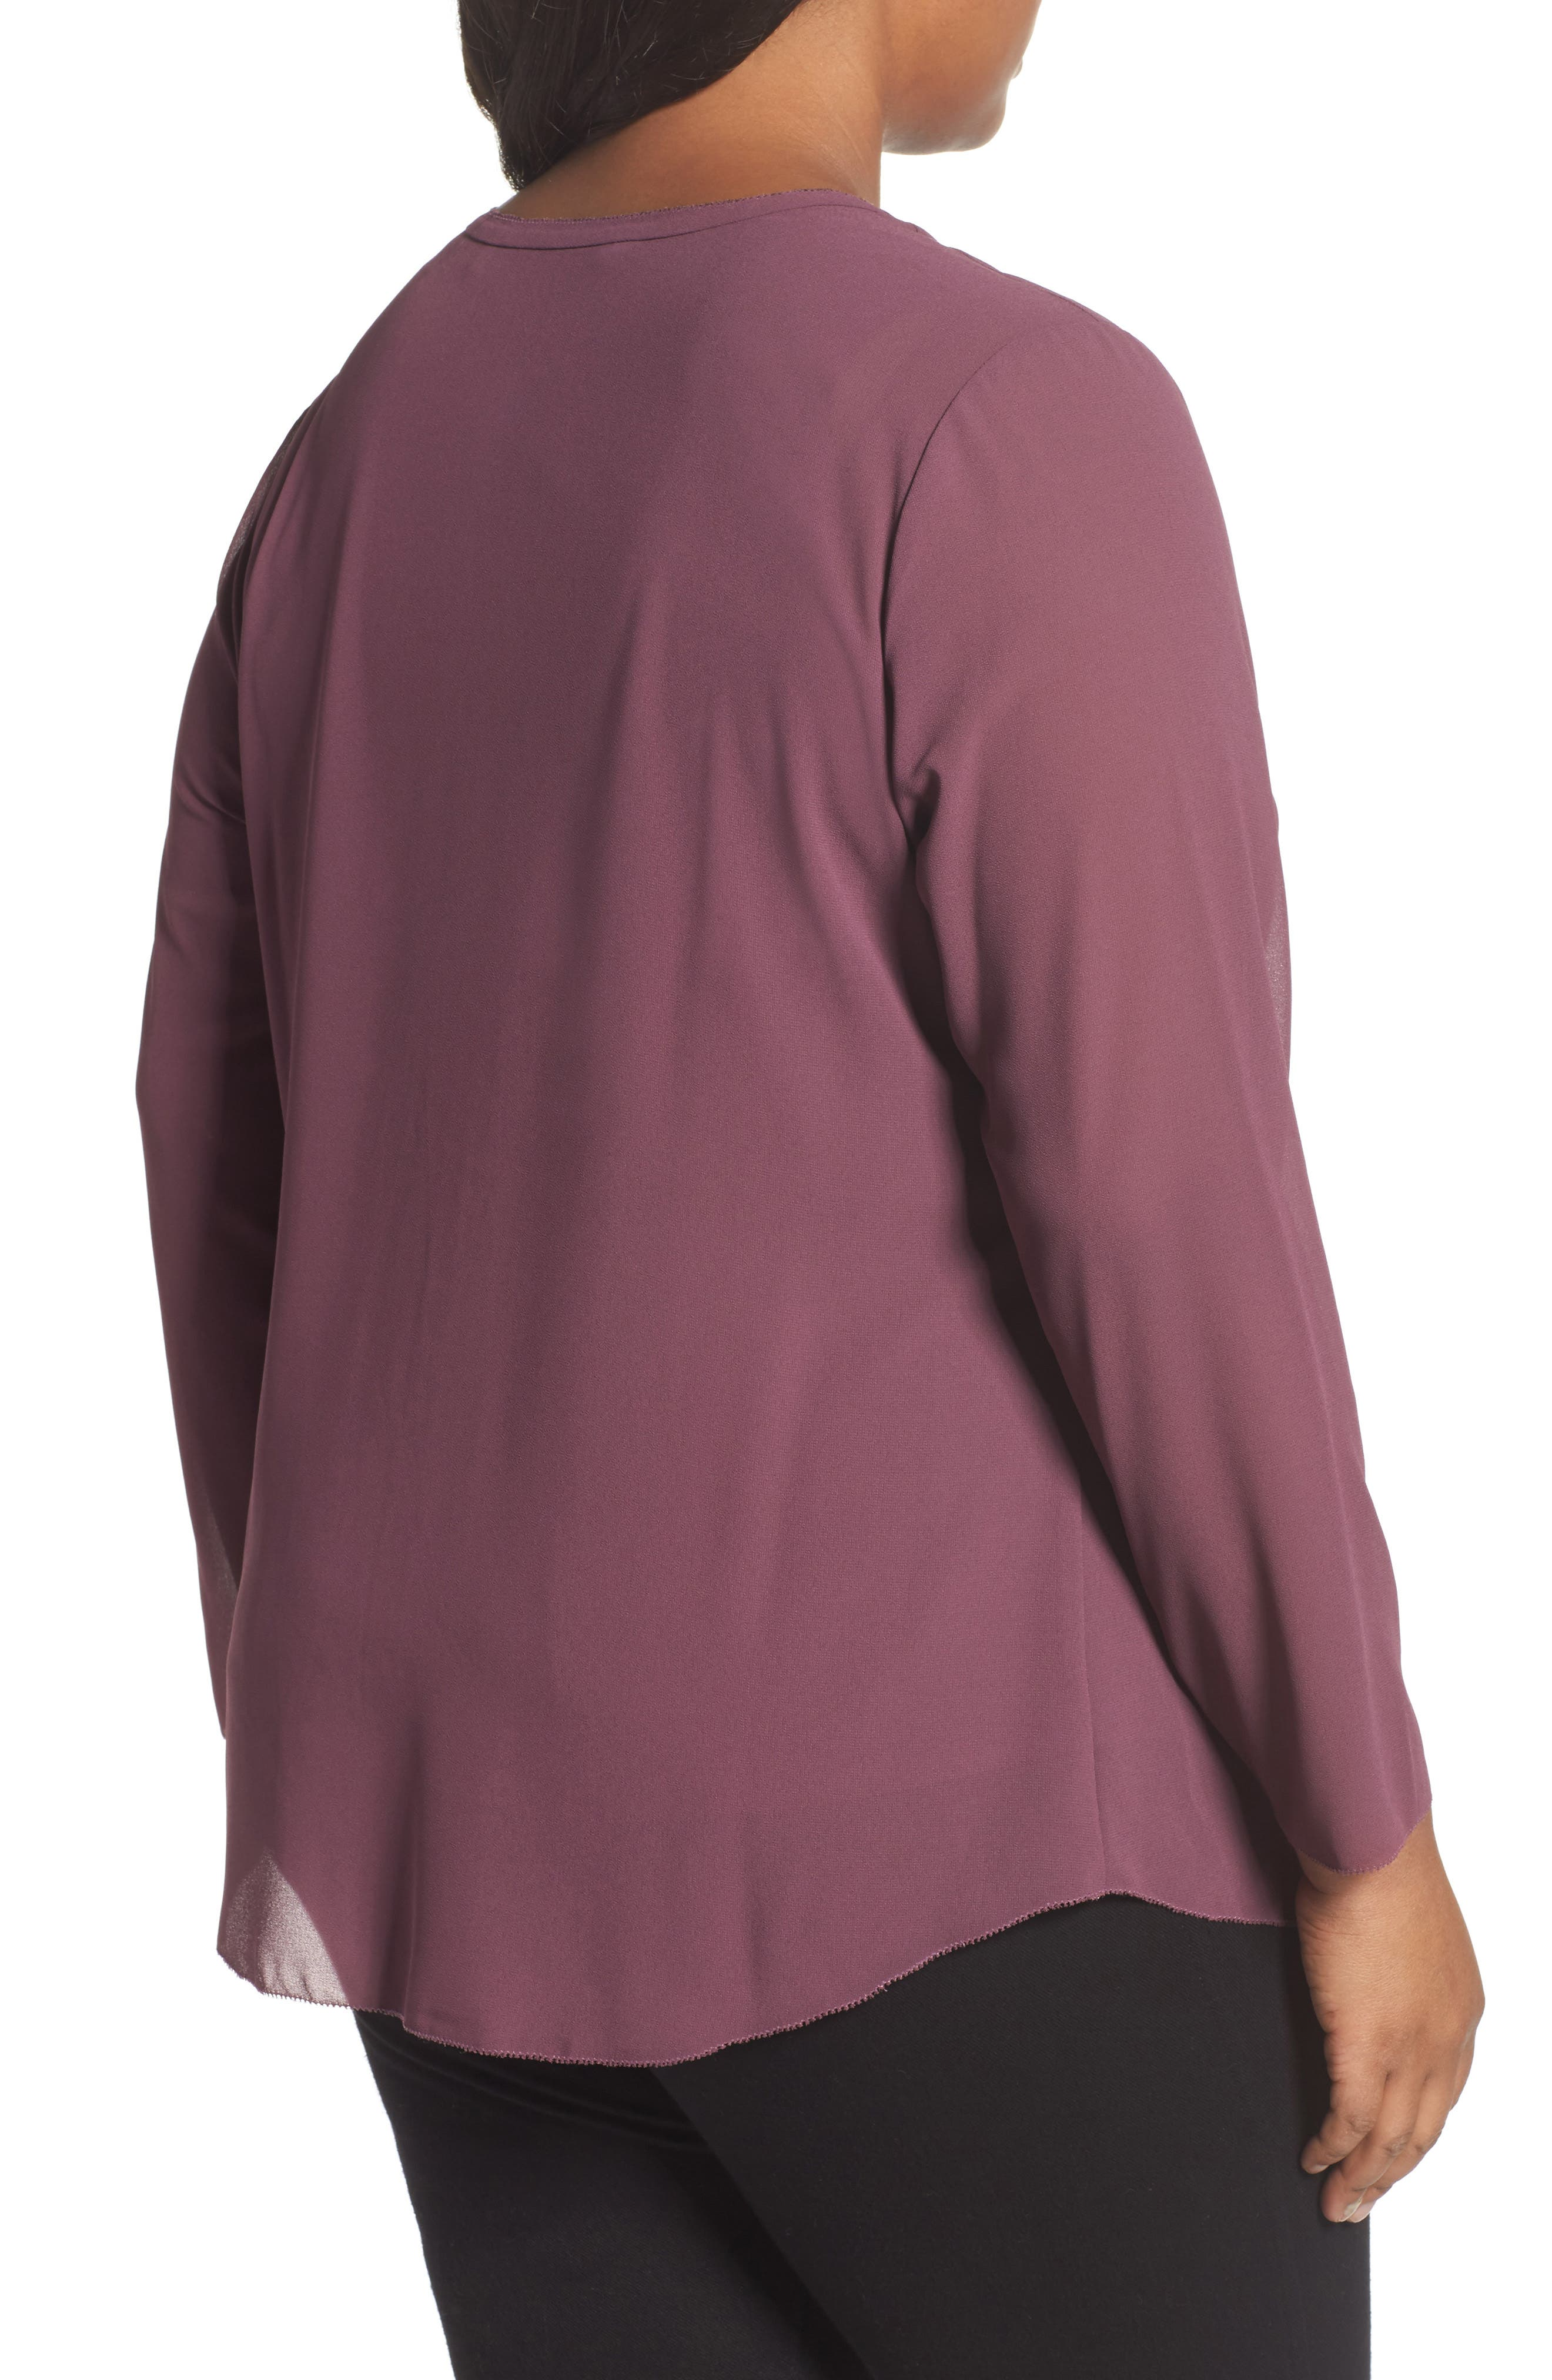 Alternate Image 2  - Foxcroft Ashleigh Chiffon Top (Plus Size)